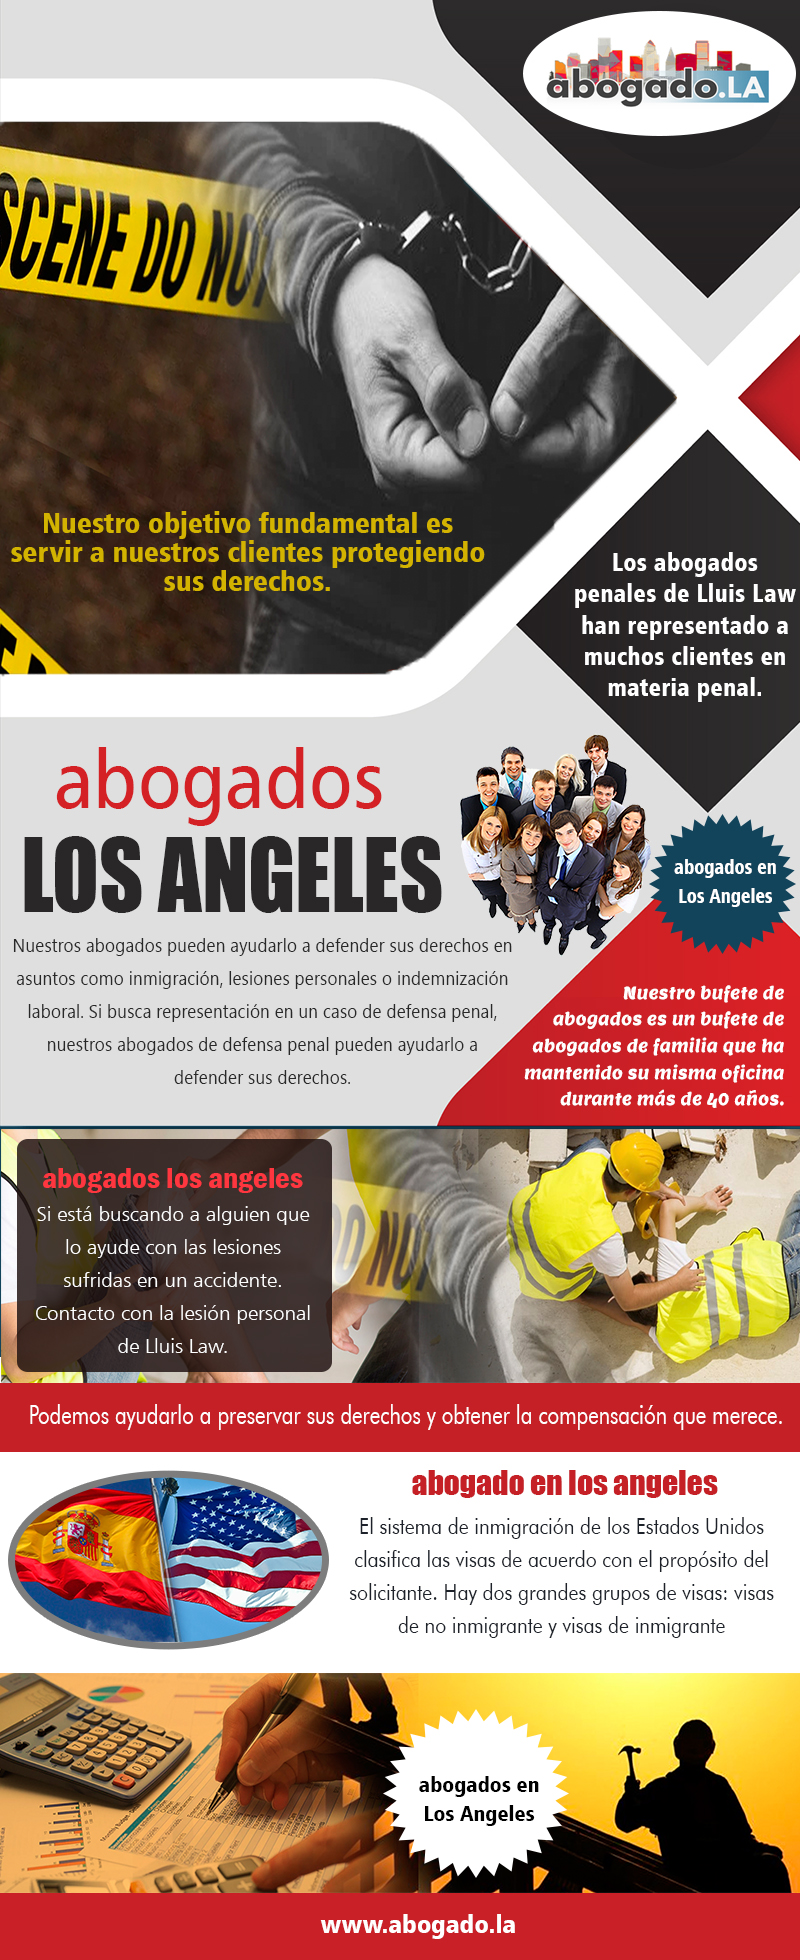 Abogados Los Angeles | Call – 213-320-0777 | abogado.la